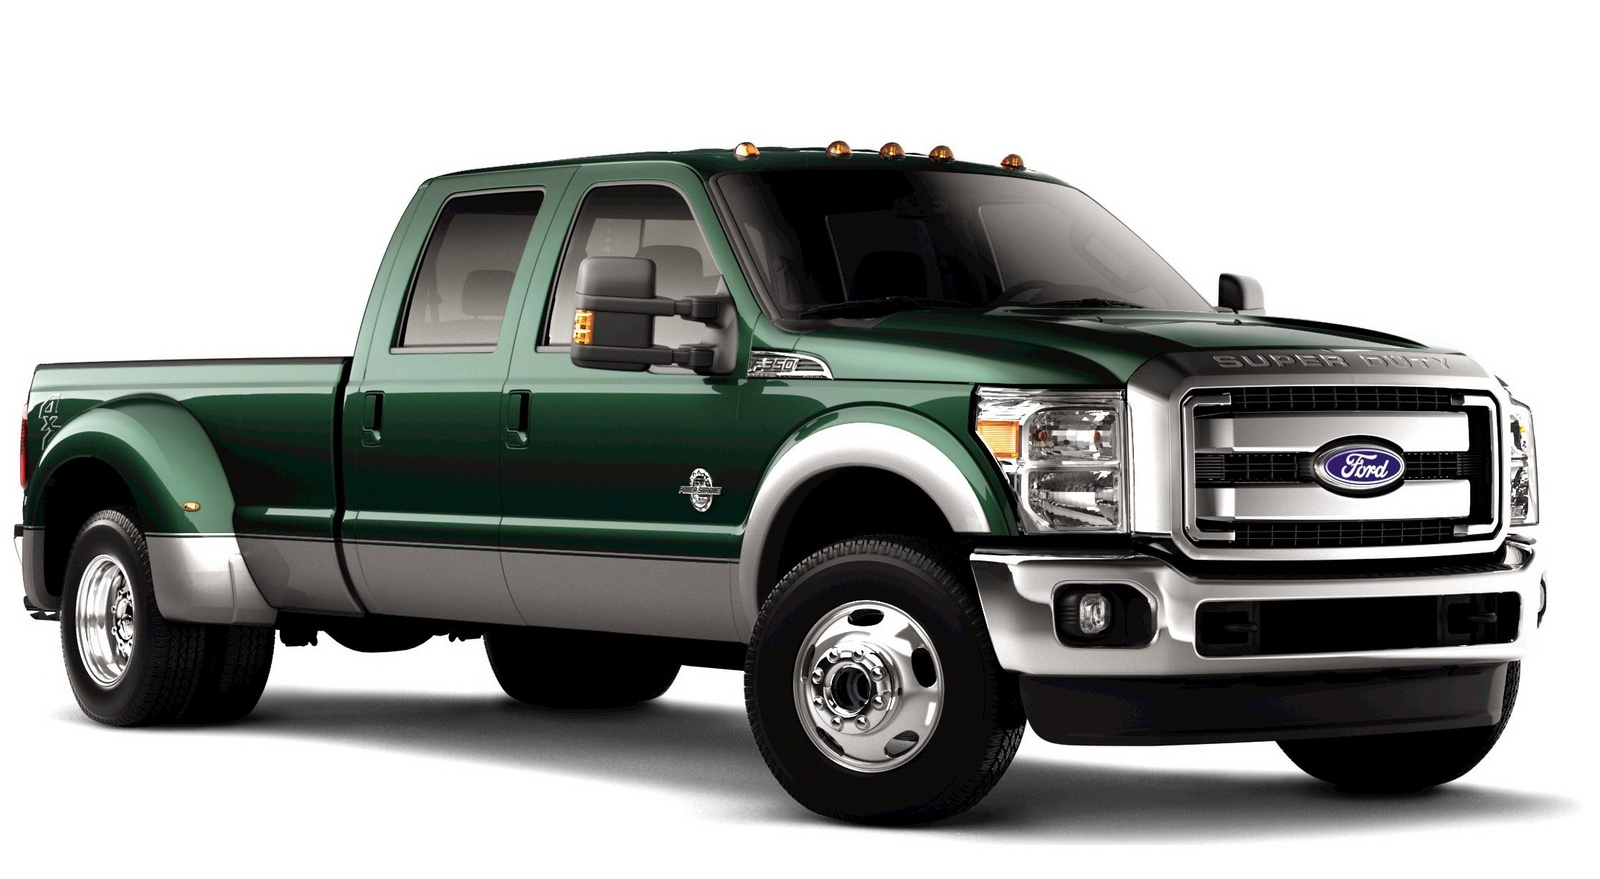 2011 Ford F-350 Super Duty #1